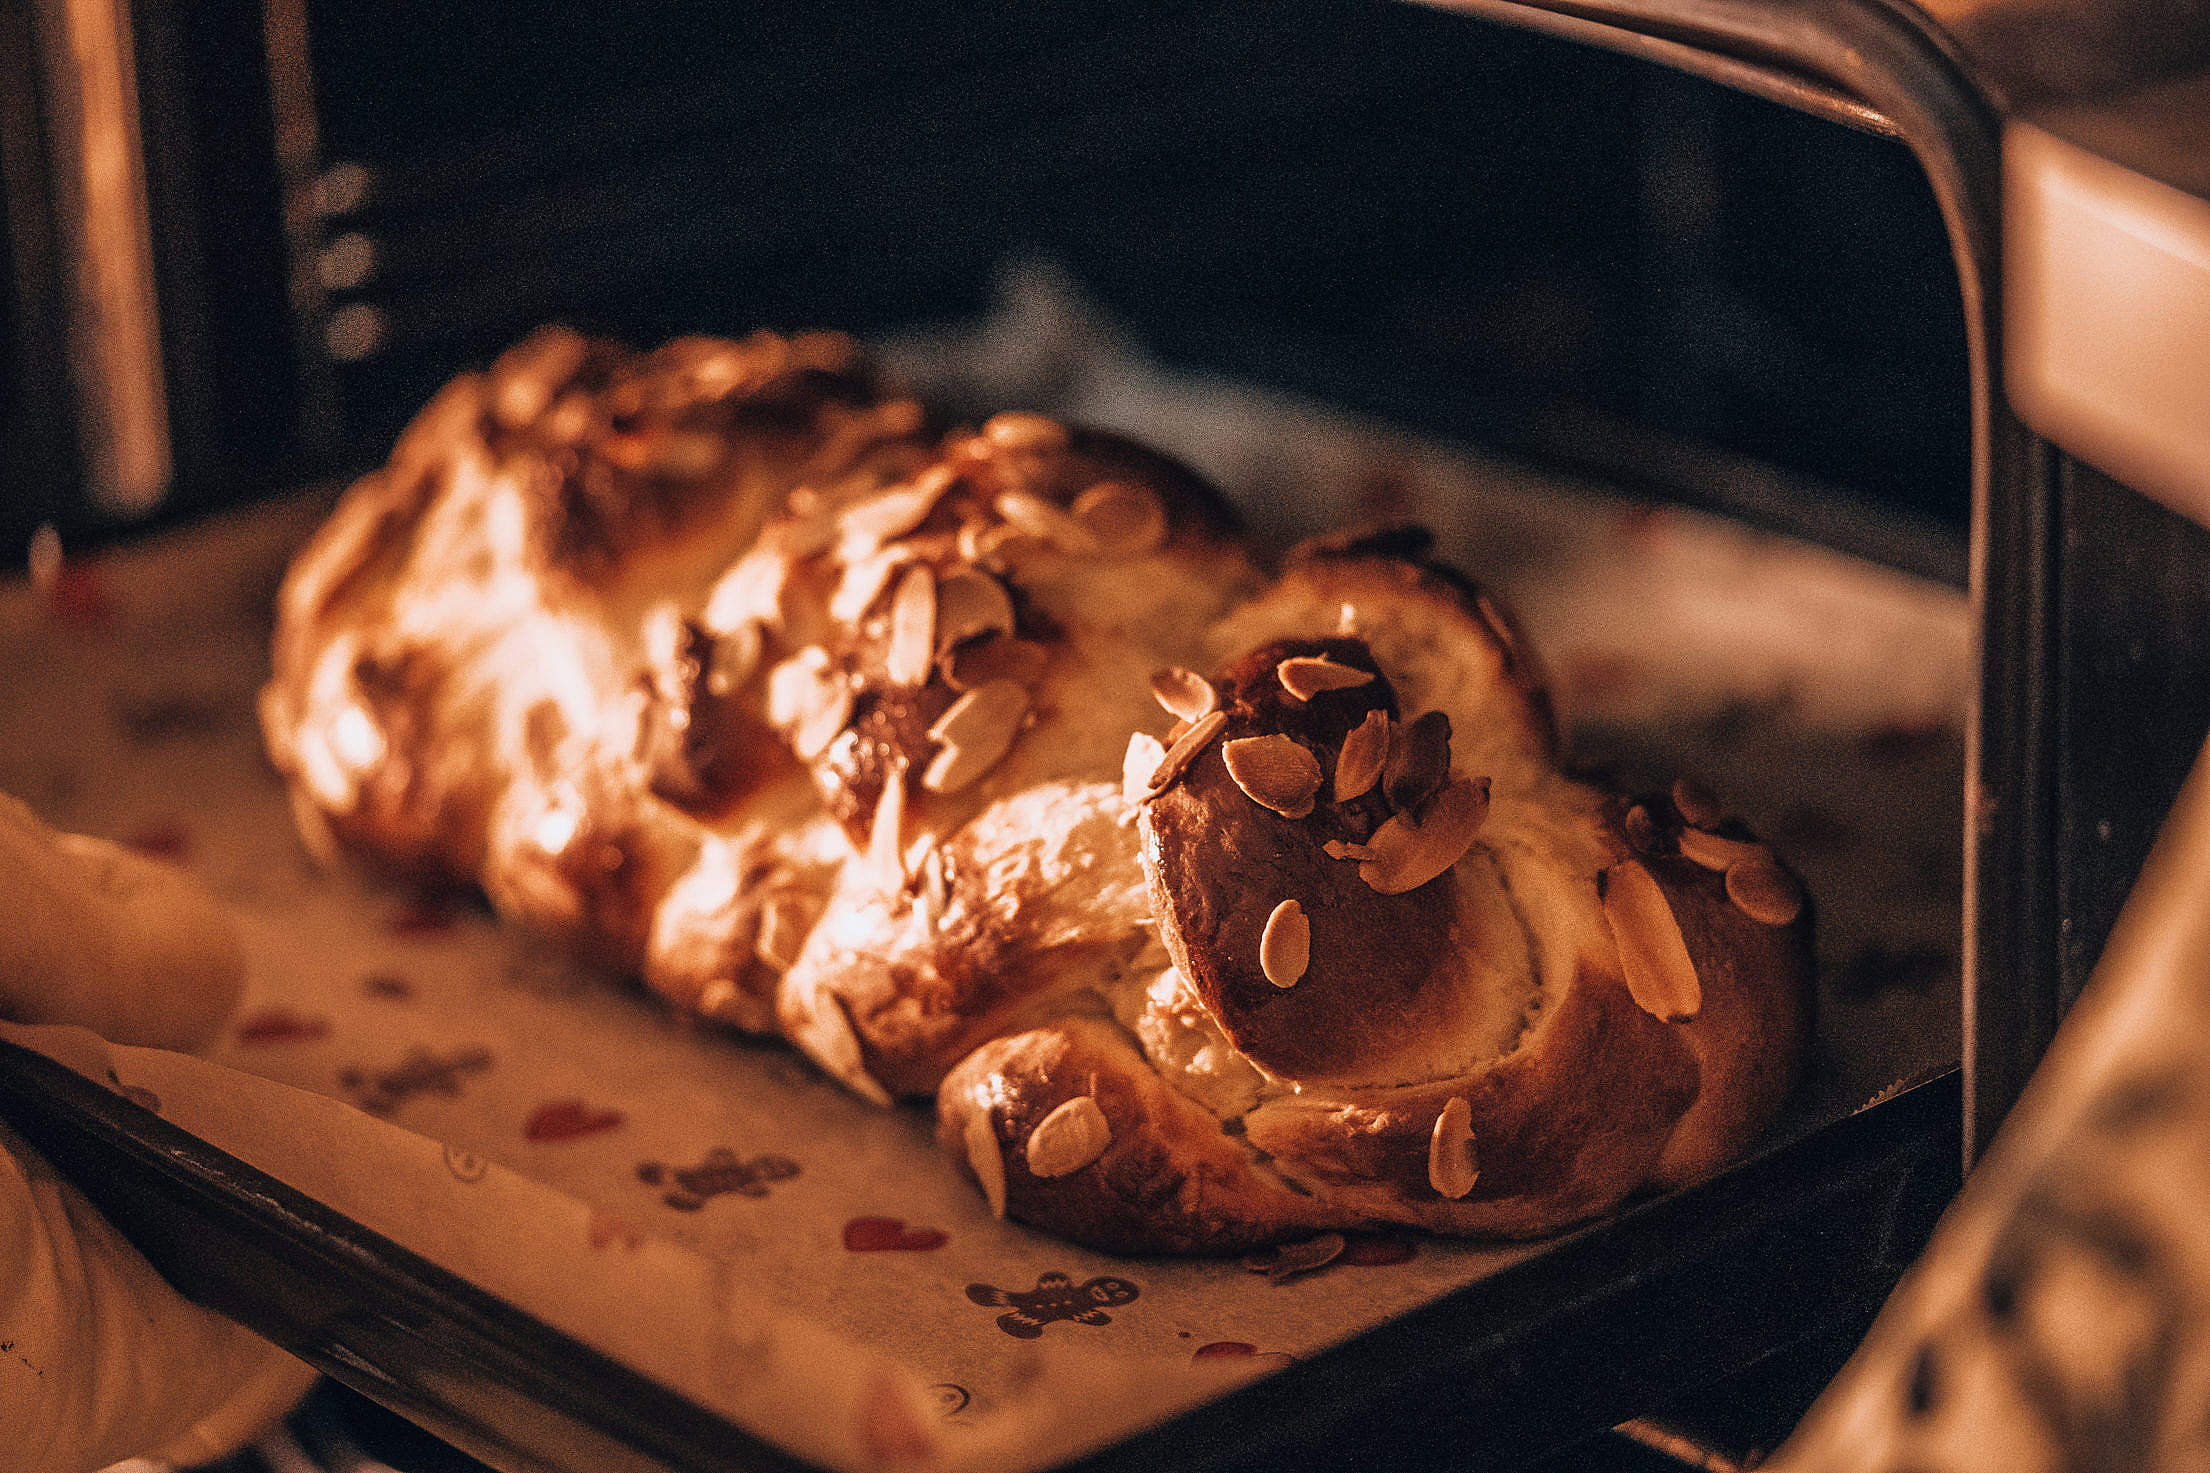 Baked Braided Sweet Bread Free Stock Photo